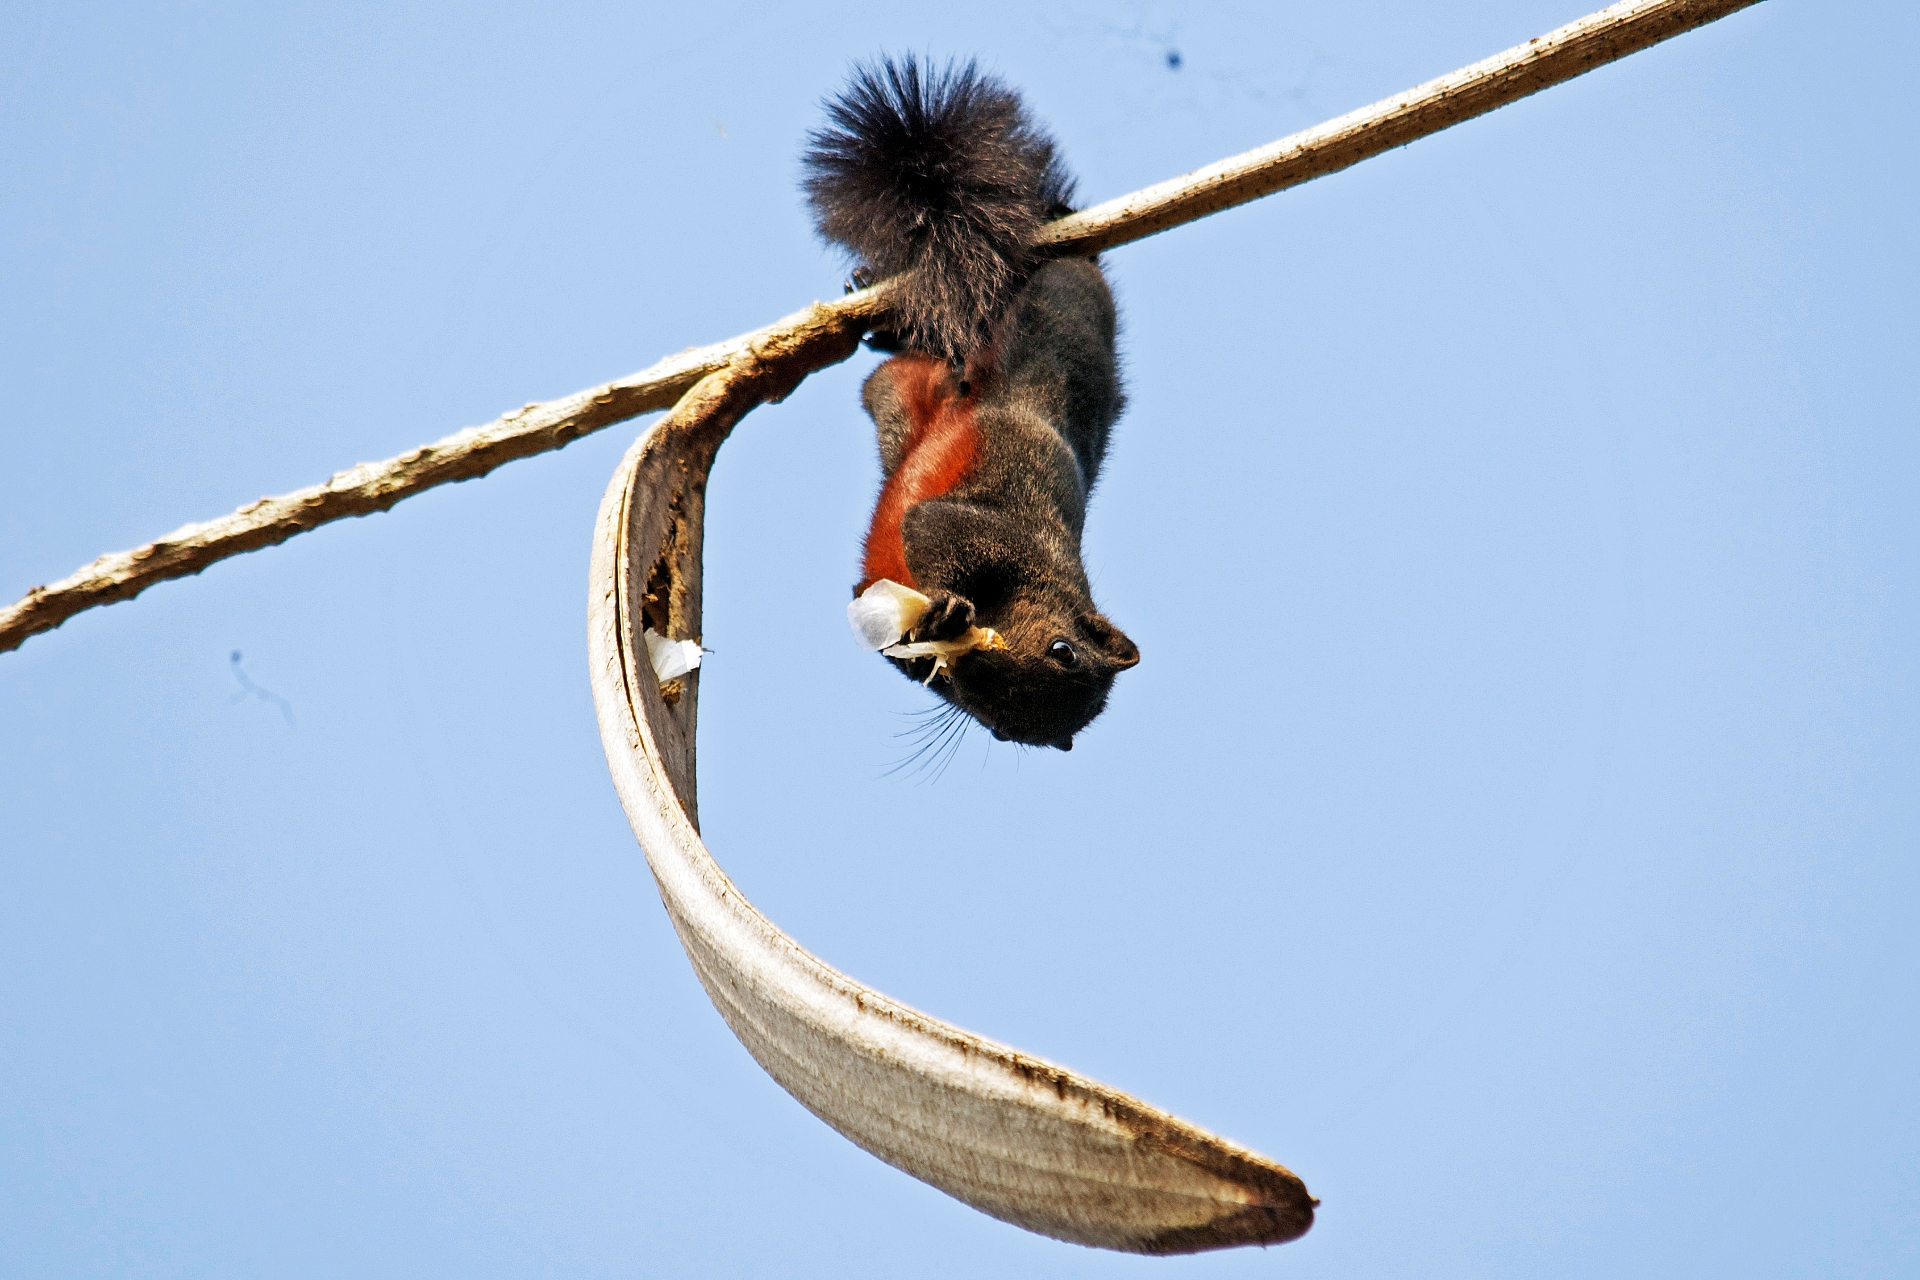 Owing to the reddish tint on its tummy, the Pallas's squirrel is also known as the red-bellied tree squirrel.   Photo: Vijay Anand Ismavel